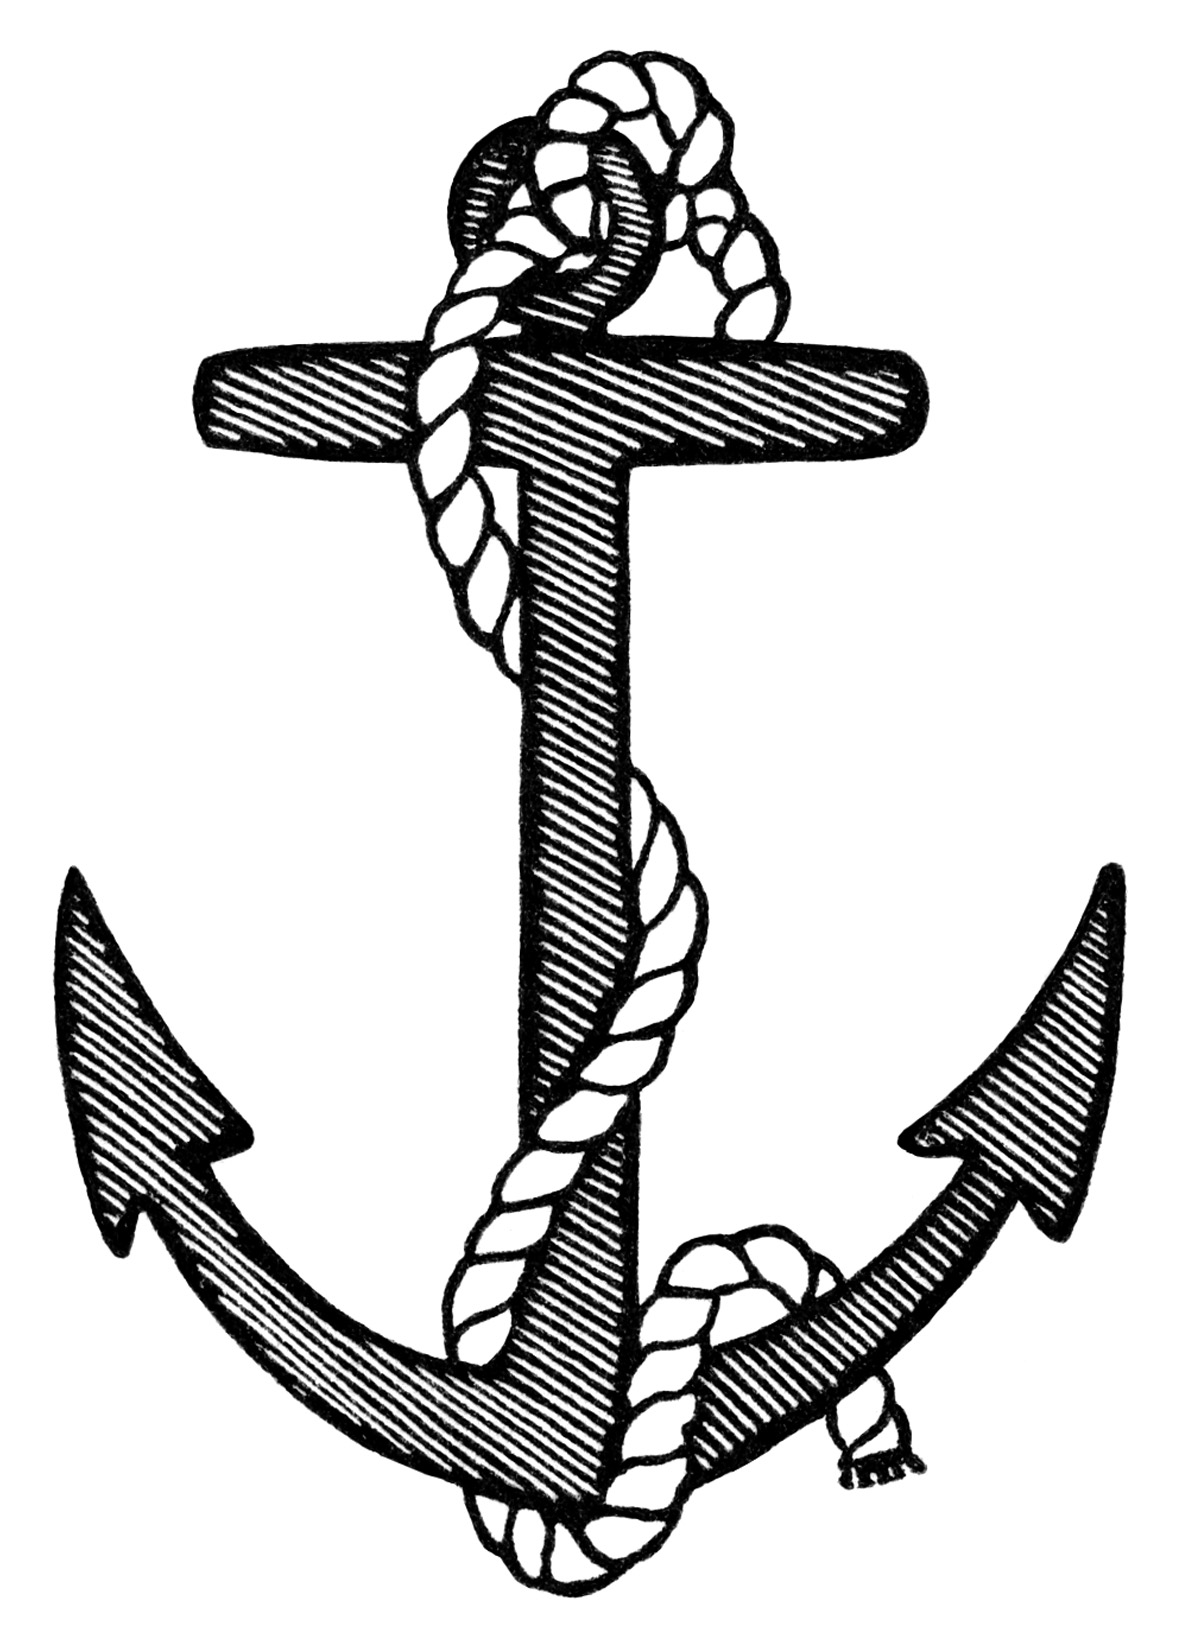 Anchor Clip Art Black And White Clipart Free Vintage Anchor Image